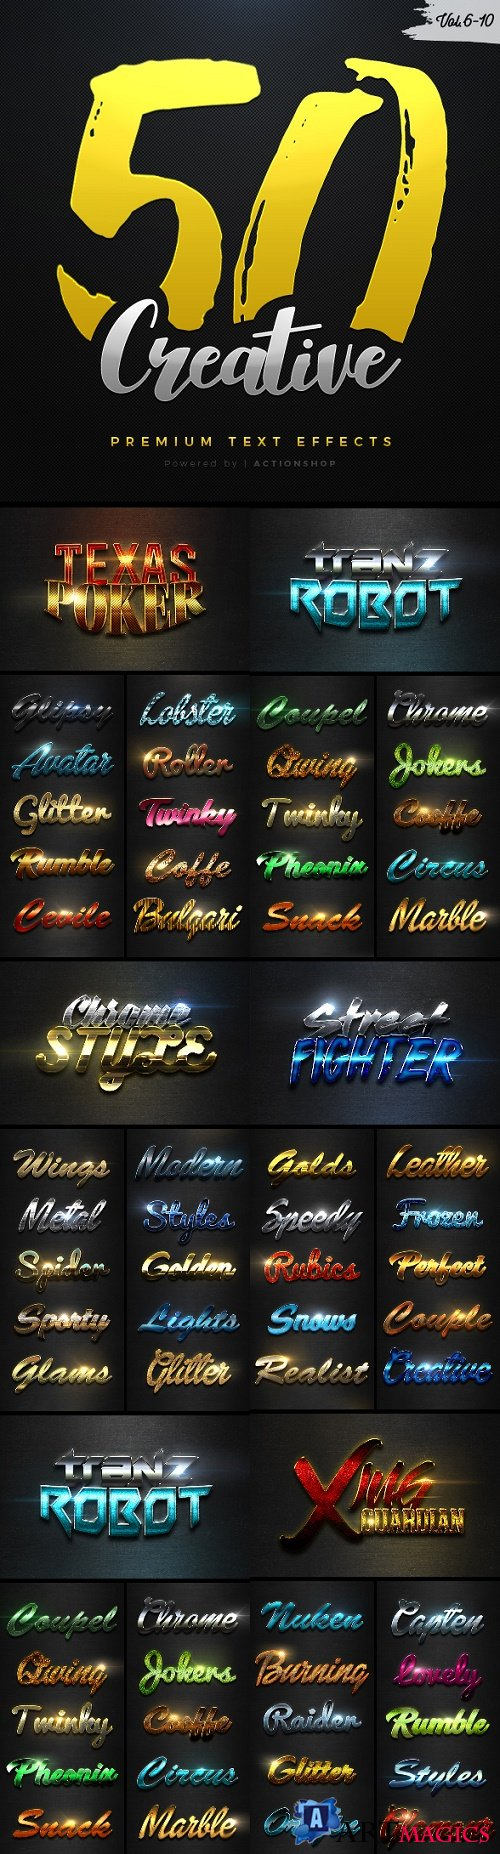 50 Creative Text Effects Bundle Two - 21206282